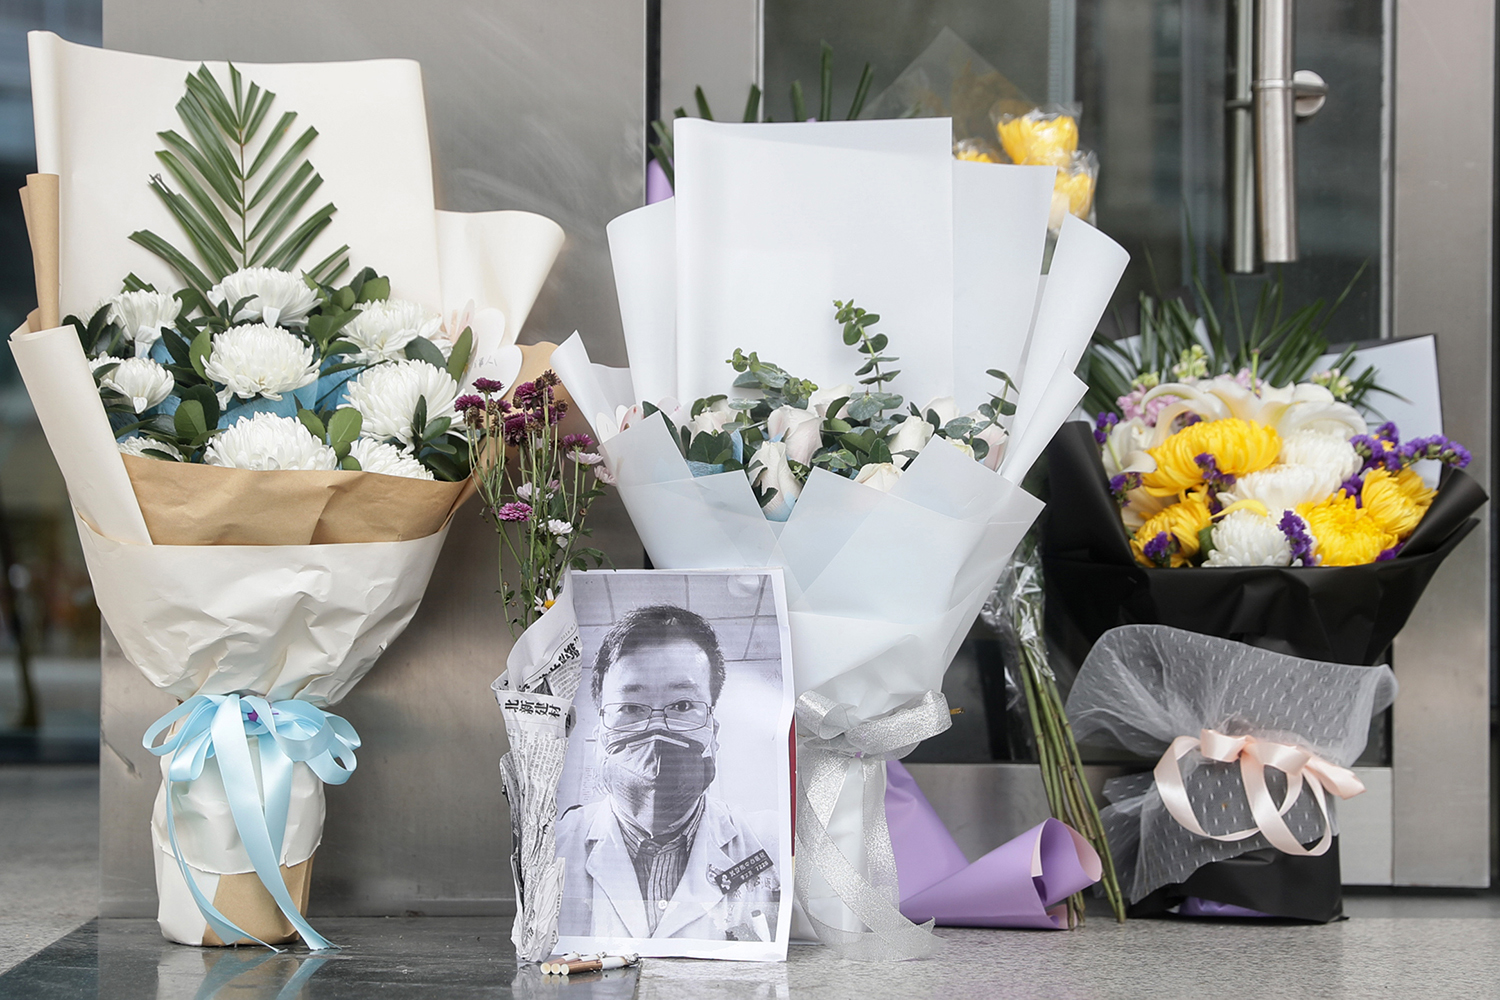 A photo of the late ophthalmologist Li Wenliang rests among bouquets at the Houhu Branch of Wuhan Central Hospital on Feb. 7.